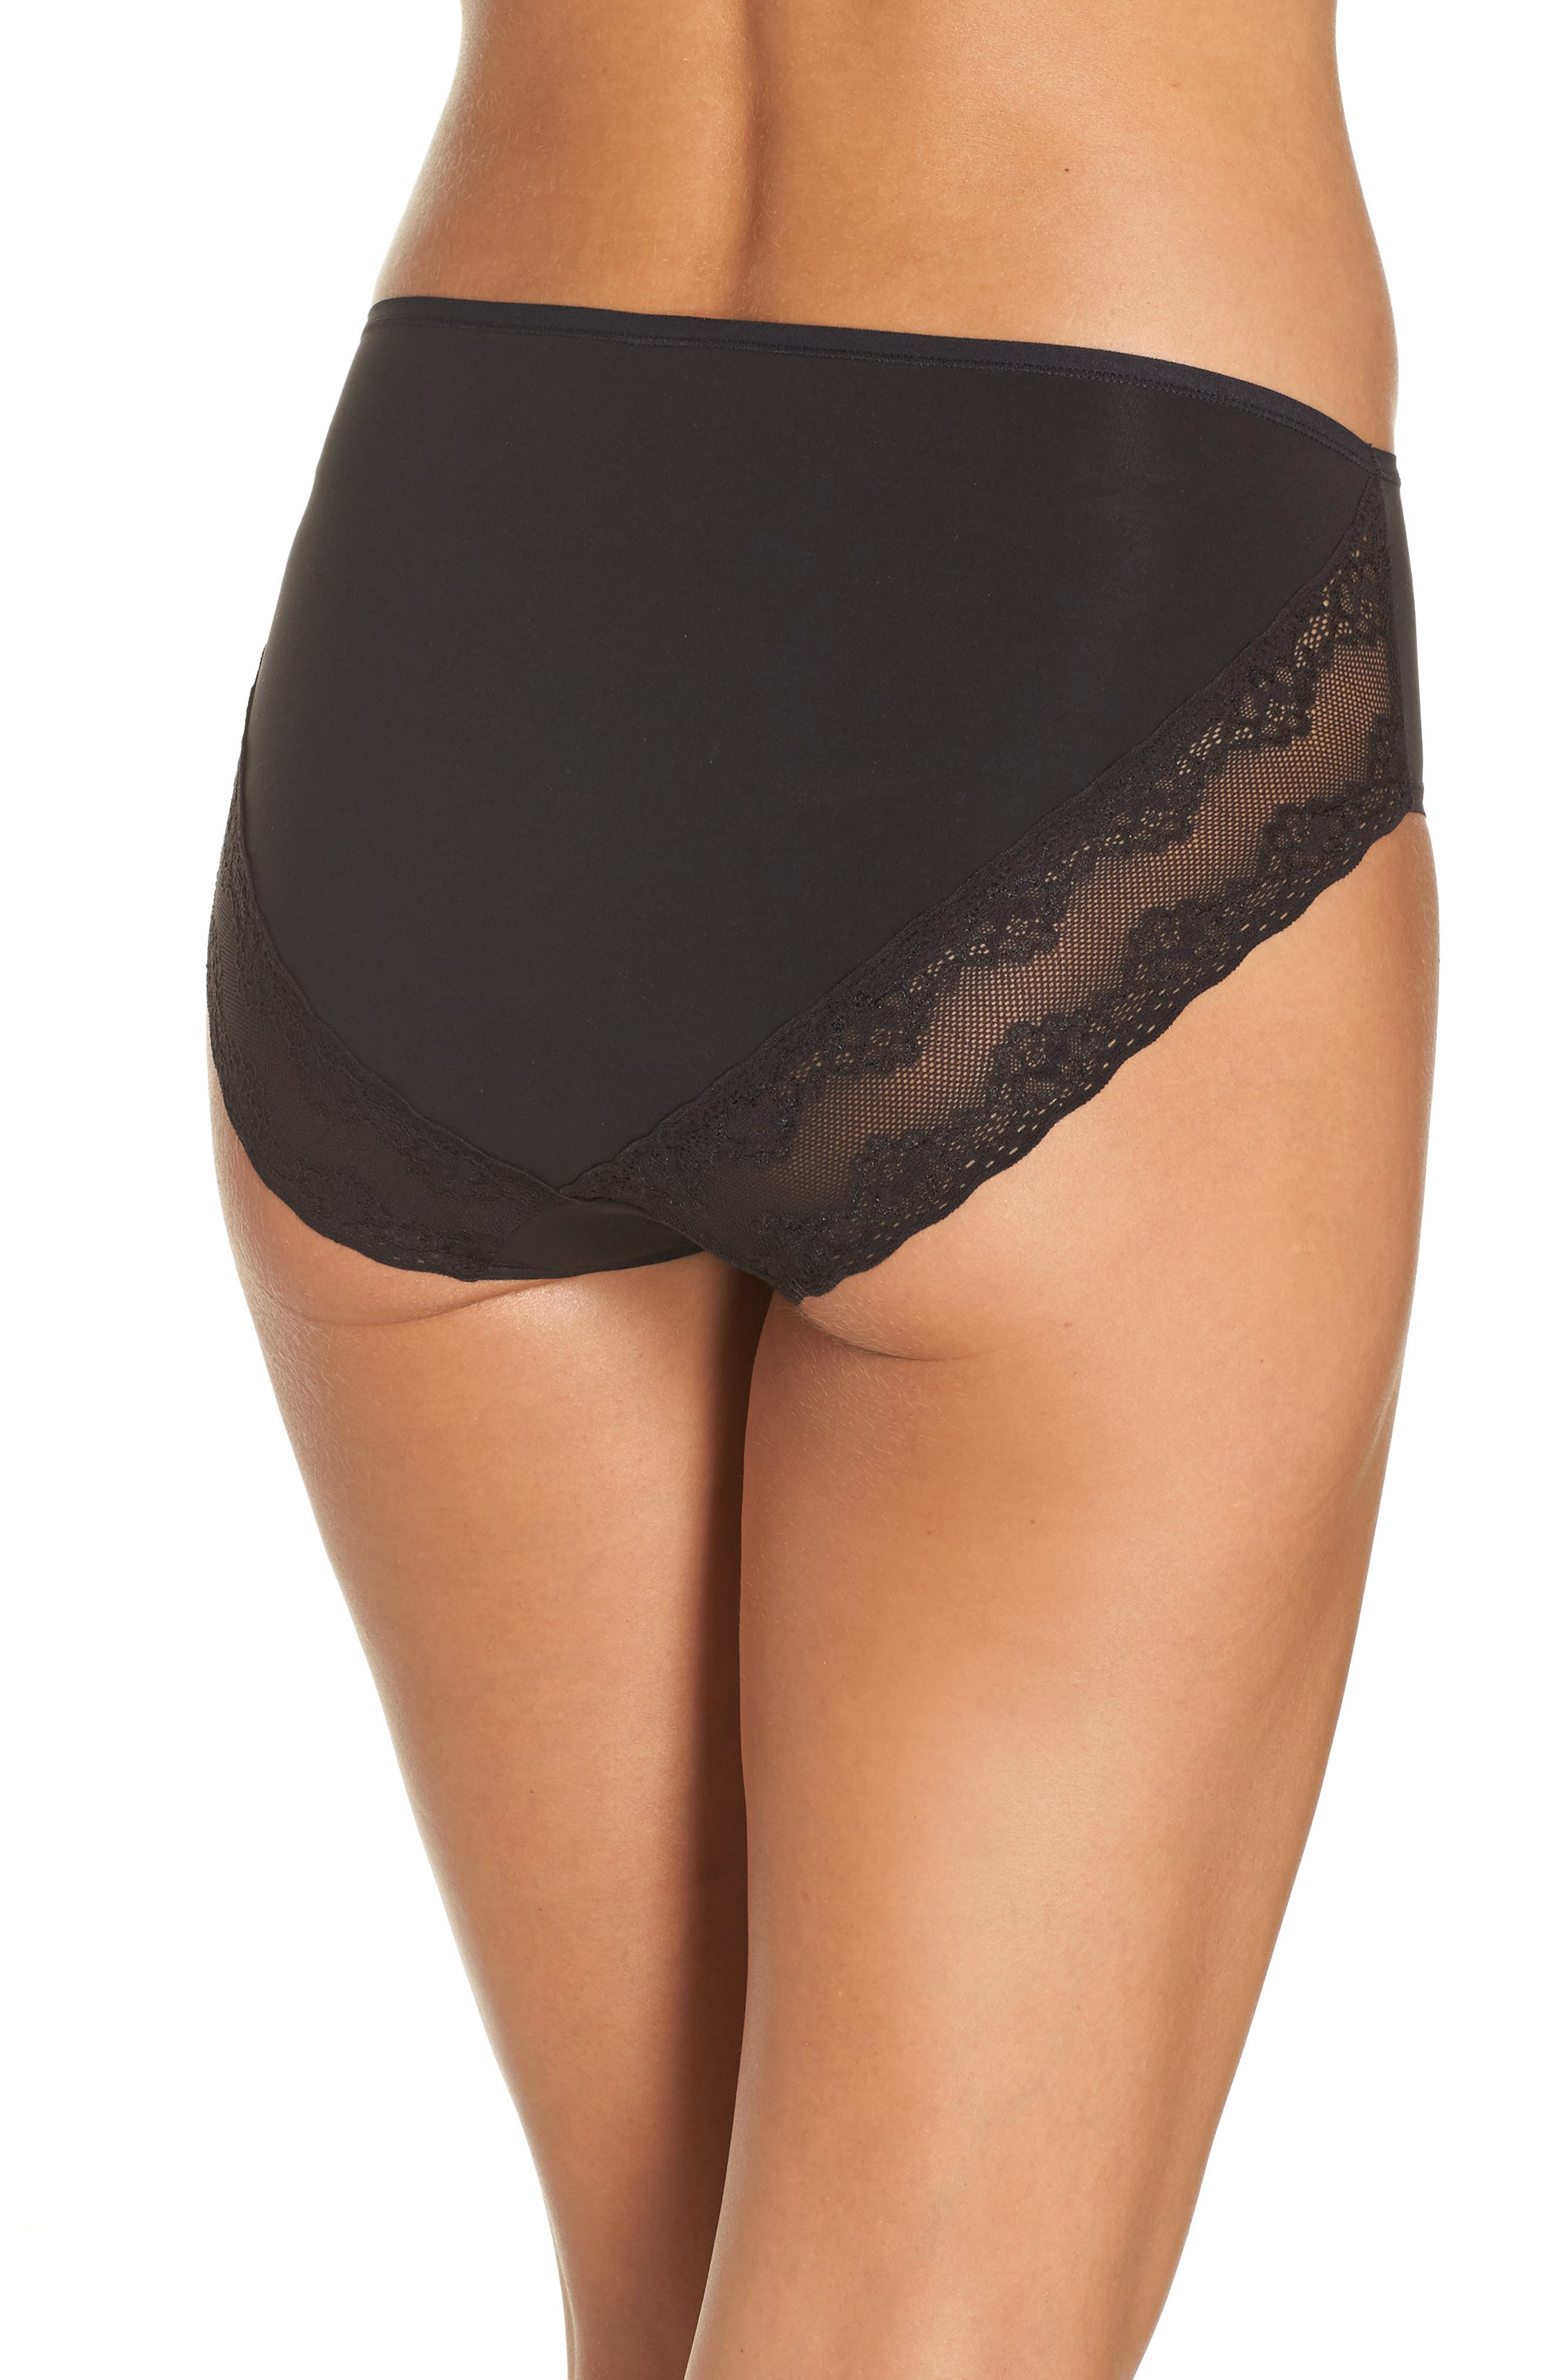 Bliss Perfection French Cut Briefs,                             Alternate thumbnail 2, color,                             BLACK